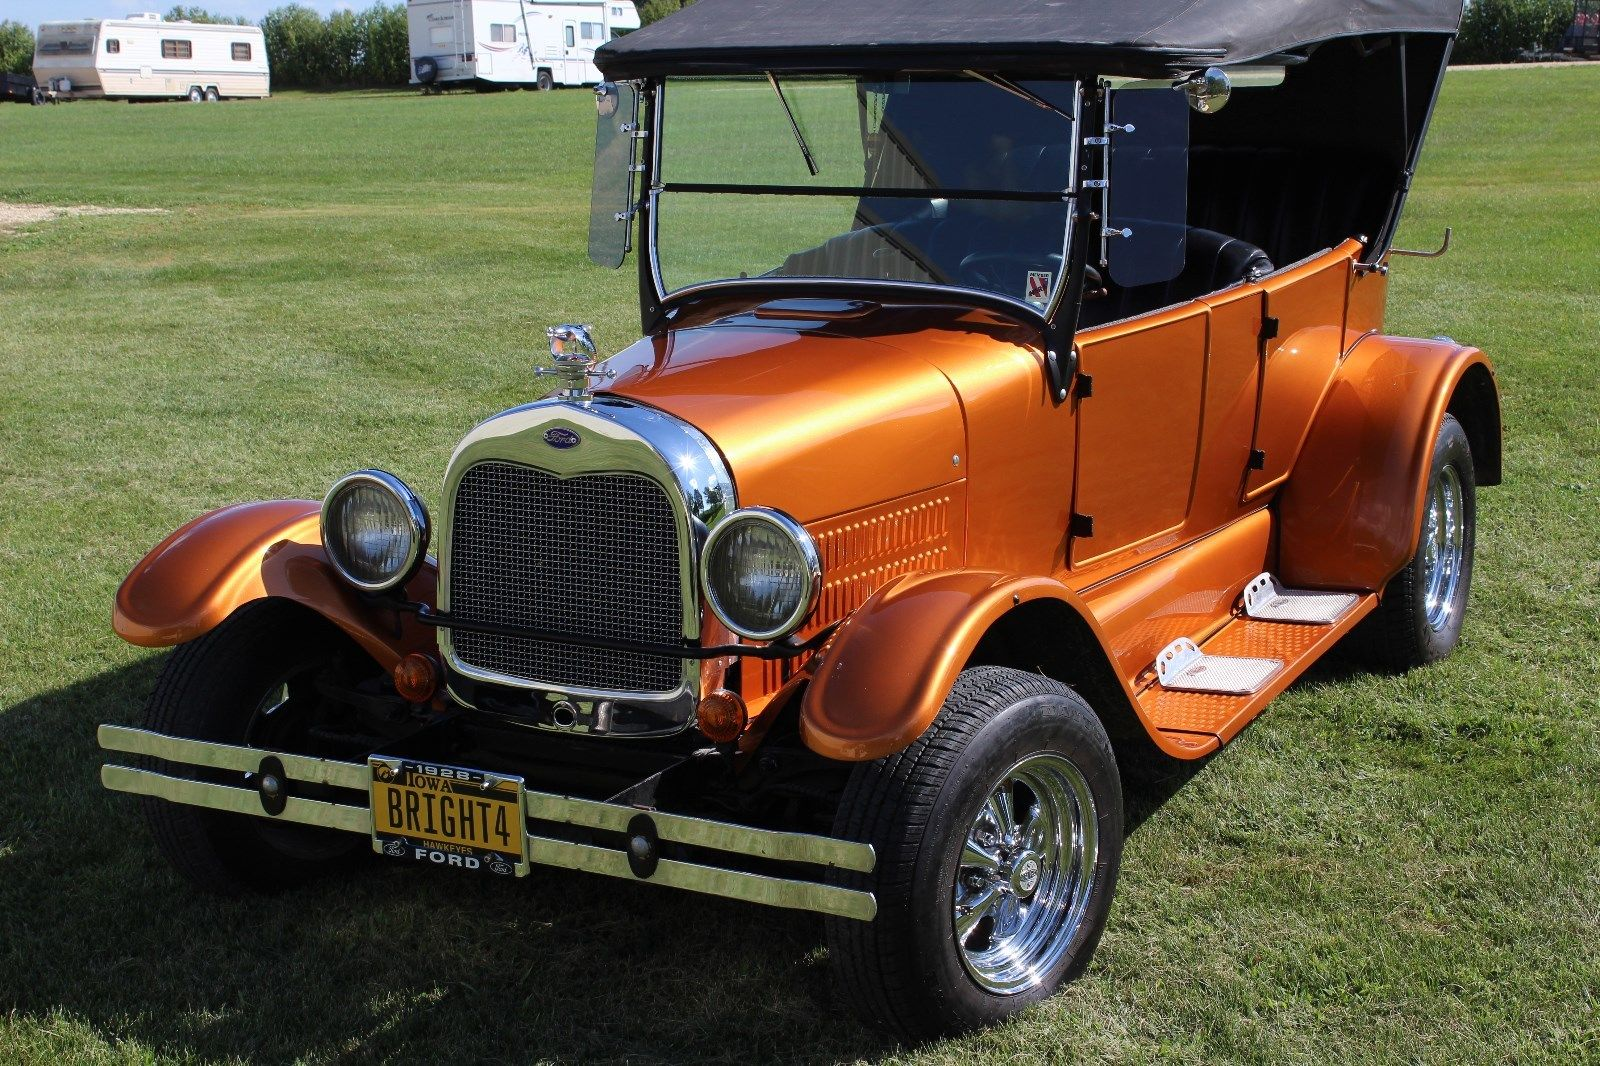 Mustang Based 1928 Ford Model A Hot Rod Replica For Sale